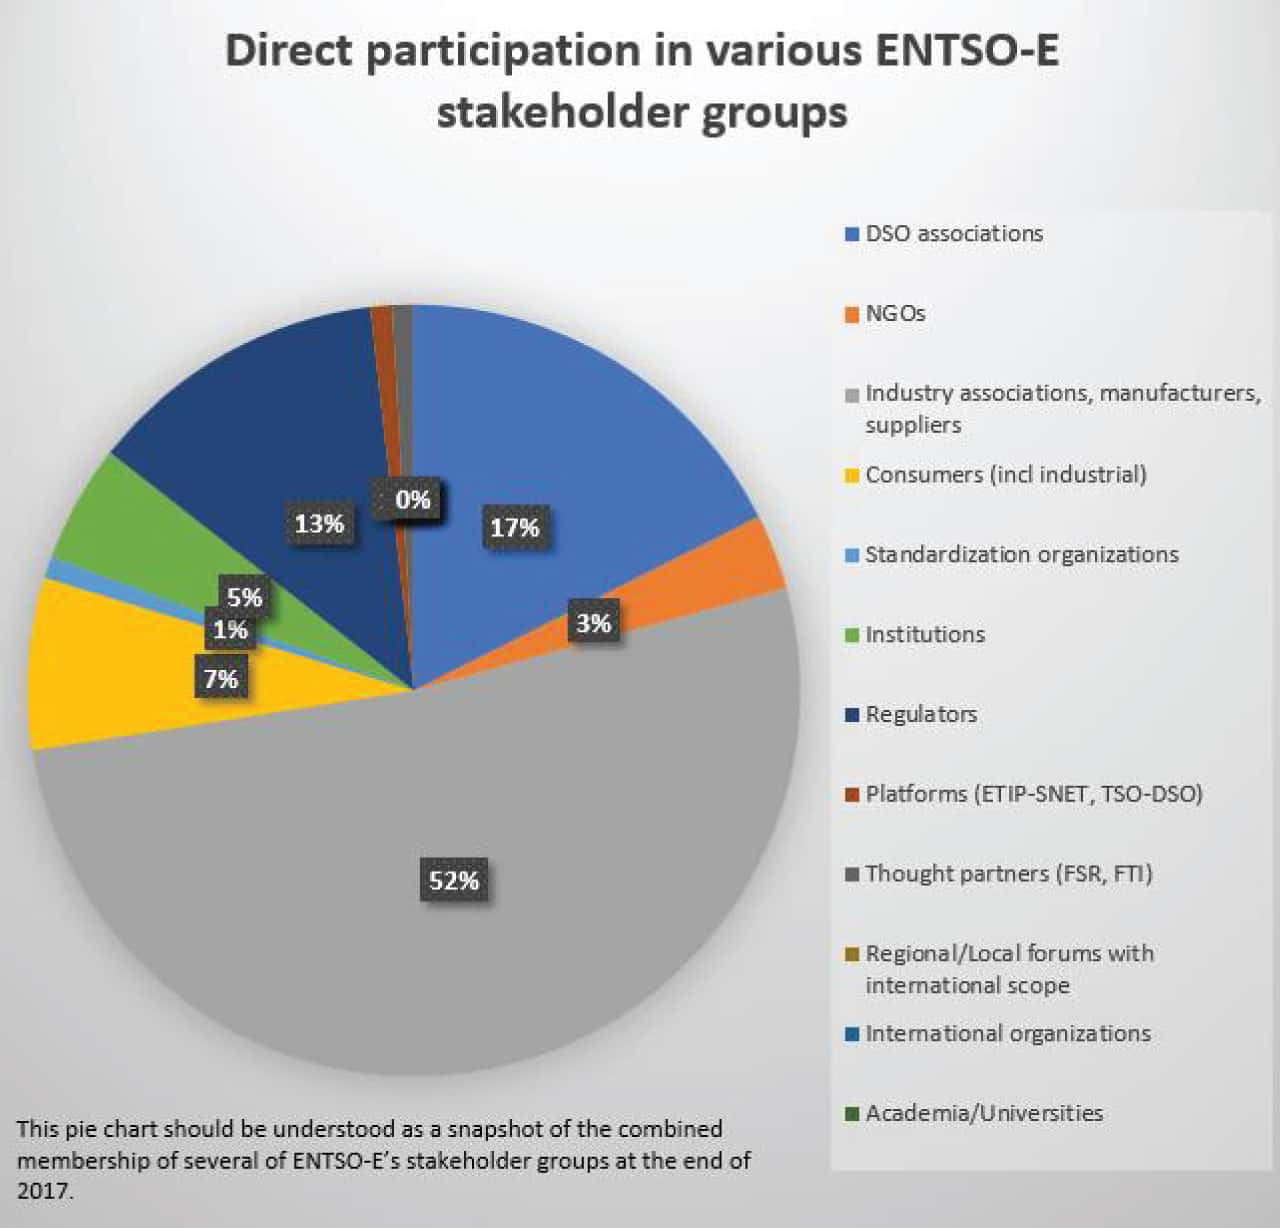 Direct participation in various ENTSO-E stakeholder groups